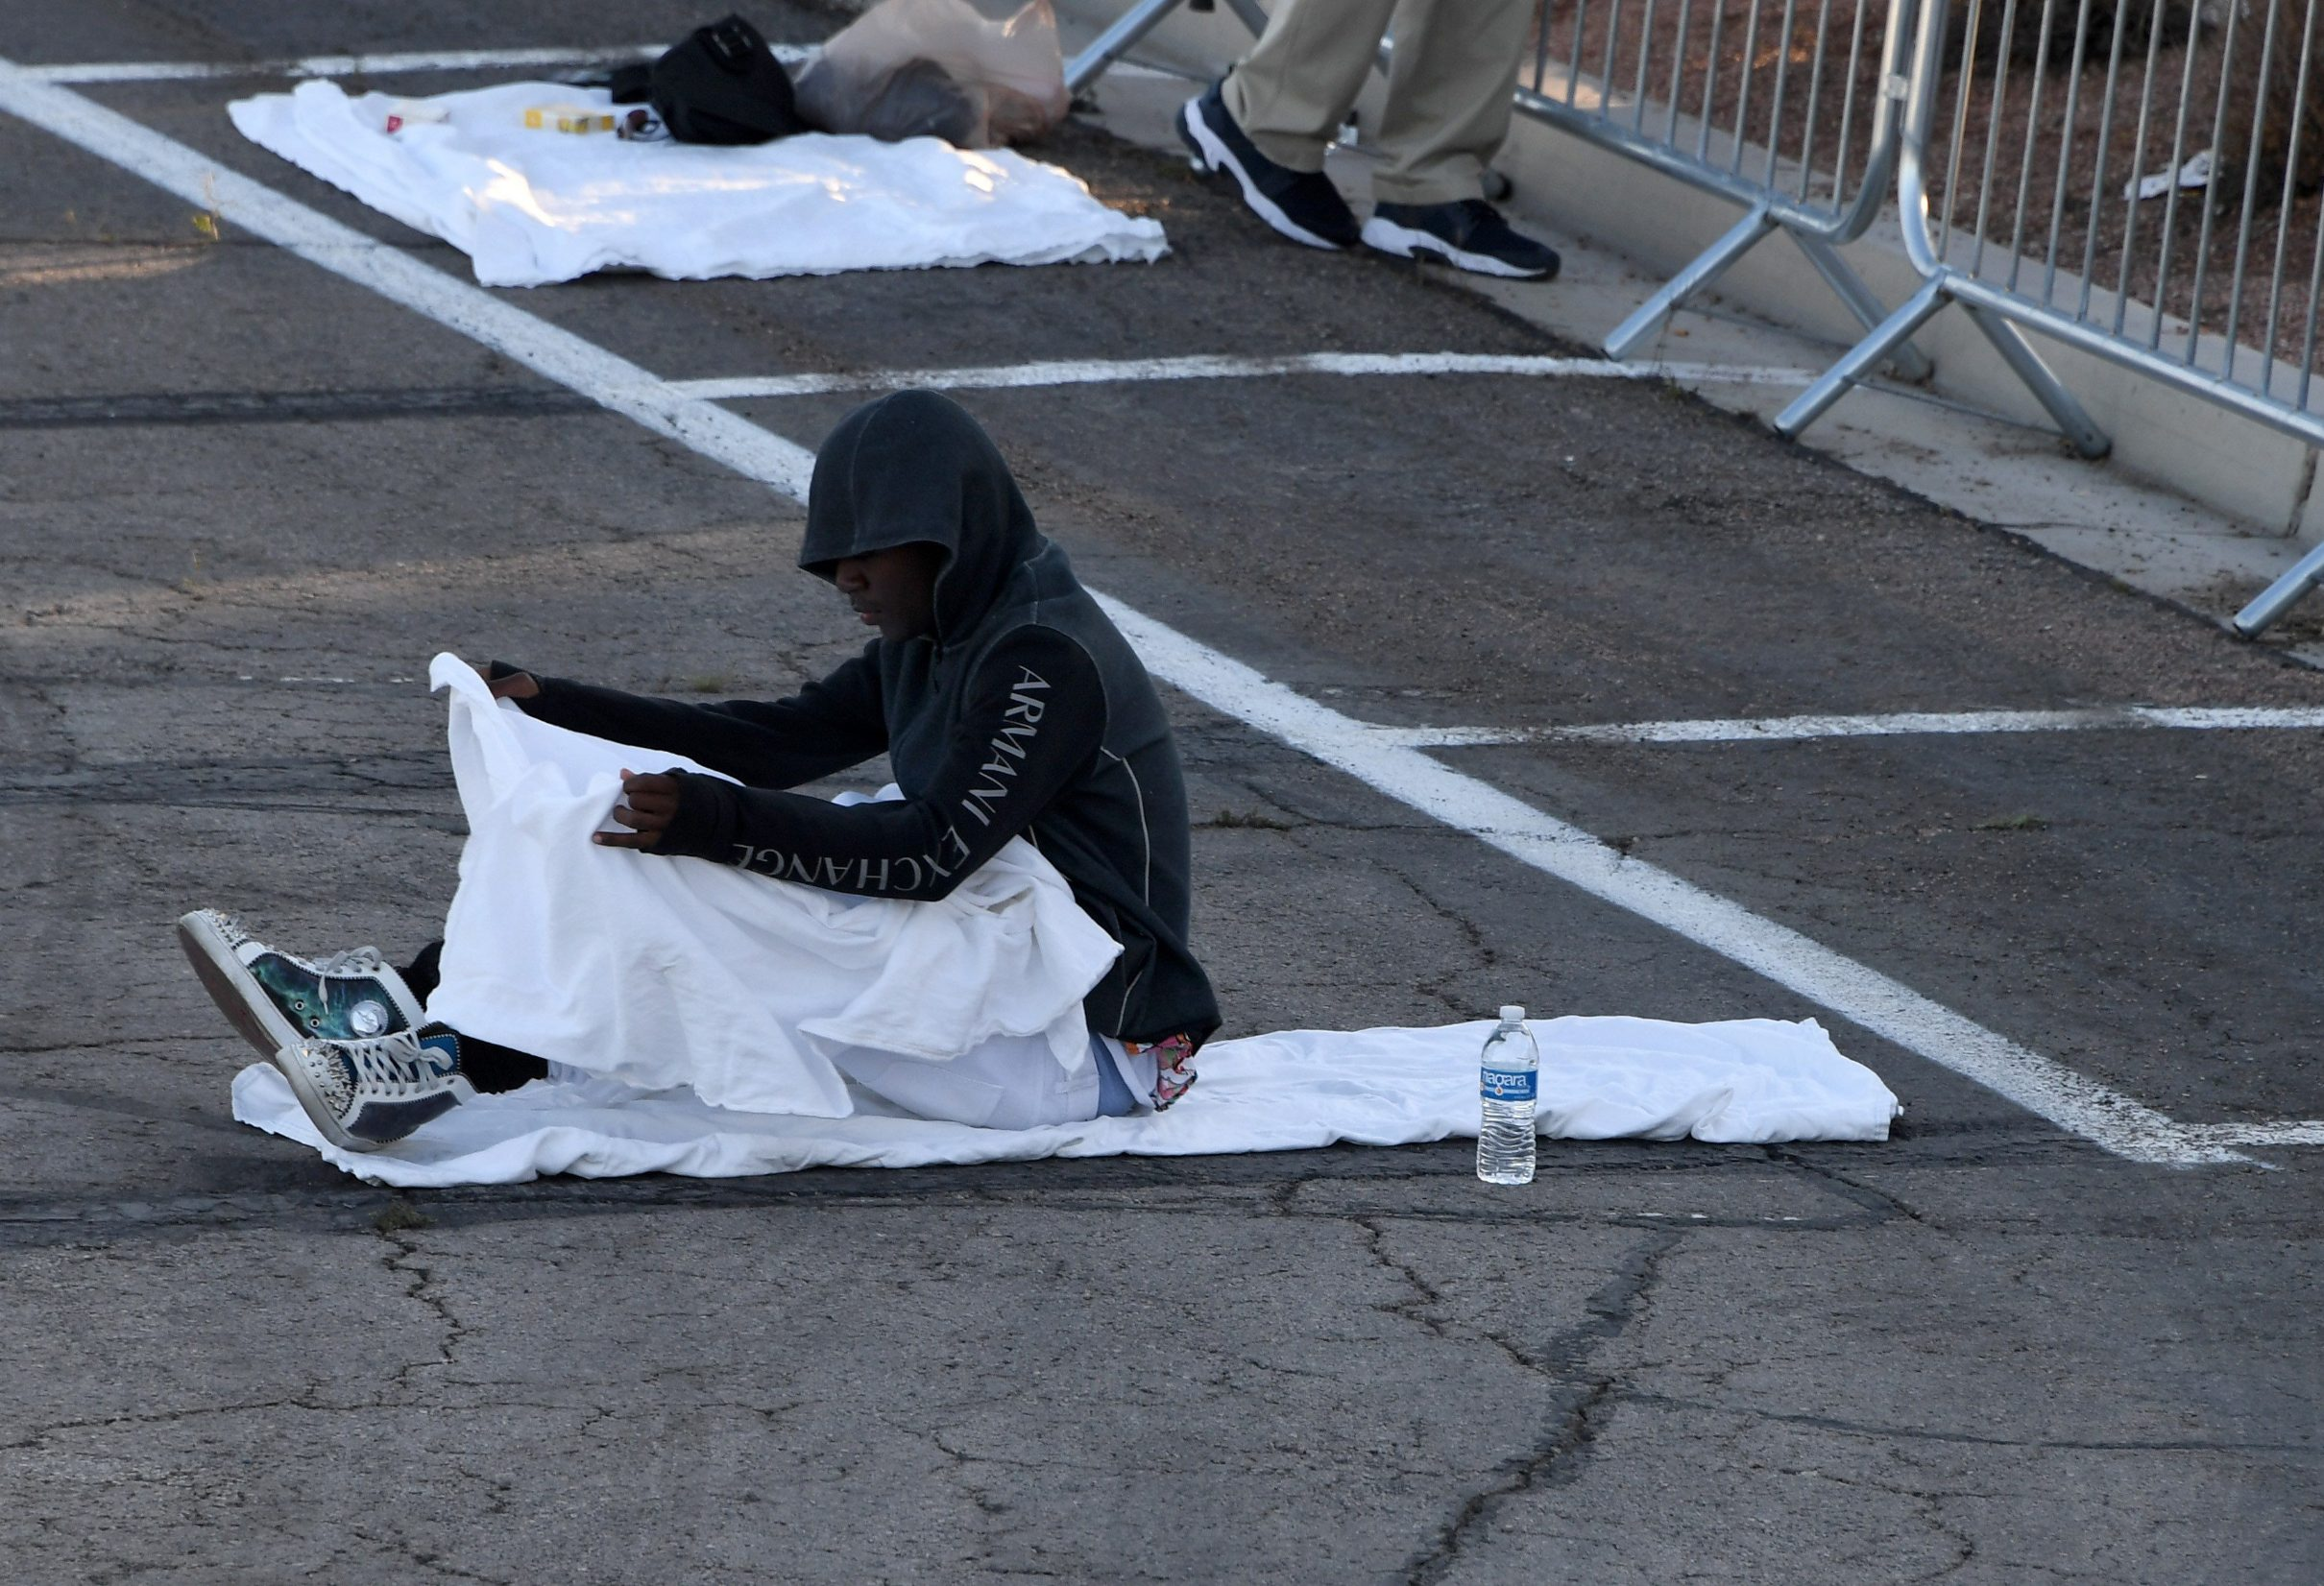 LAS VEGAS, NEVADA - MARCH 30: A man pulls a blanket over himself as he lies down at a temporary homeless shelter set up in a parking lot at Cashman Center on March 30, 2020 in Las Vegas, Nevada. Catholic Charities of Southern Nevada was closed last week after a homeless man who used their services tested positive for the coronavirus, leaving about 500 people with no overnight shelter. The city of Las Vegas, Clark County and local homeless providers plan to operate the shelter through April 3rd when it is anticipated that the Catholic Charities facility will be back open. The city is also reserving the building spaces at Cashman Center in case of an overflow of hospital patients. The World Health Organization declared the coronavirus (COVID-19) a global pandemic on March 11th.   Ethan Miller/Getty Images/AFP == FOR NEWSPAPERS, INTERNET, TELCOS & TELEVISION USE ONLY ==